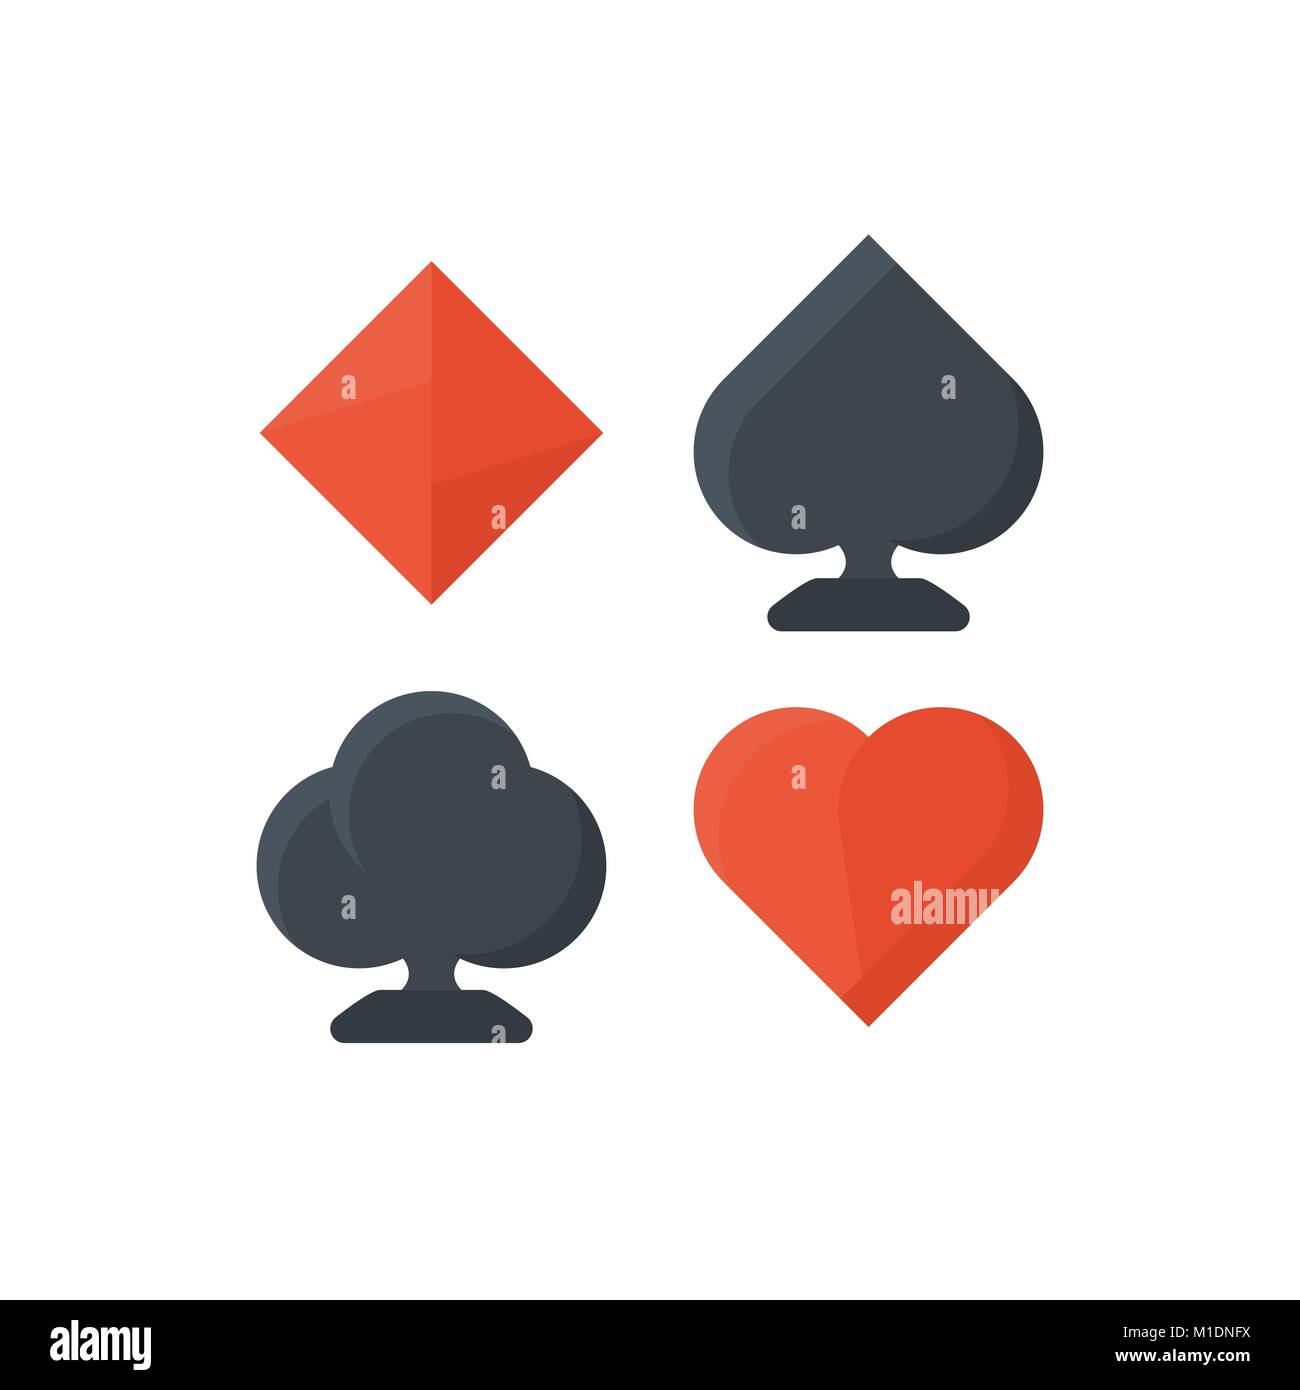 Set Of Playing Cards Symbols Stock Vector Art Illustration Vector